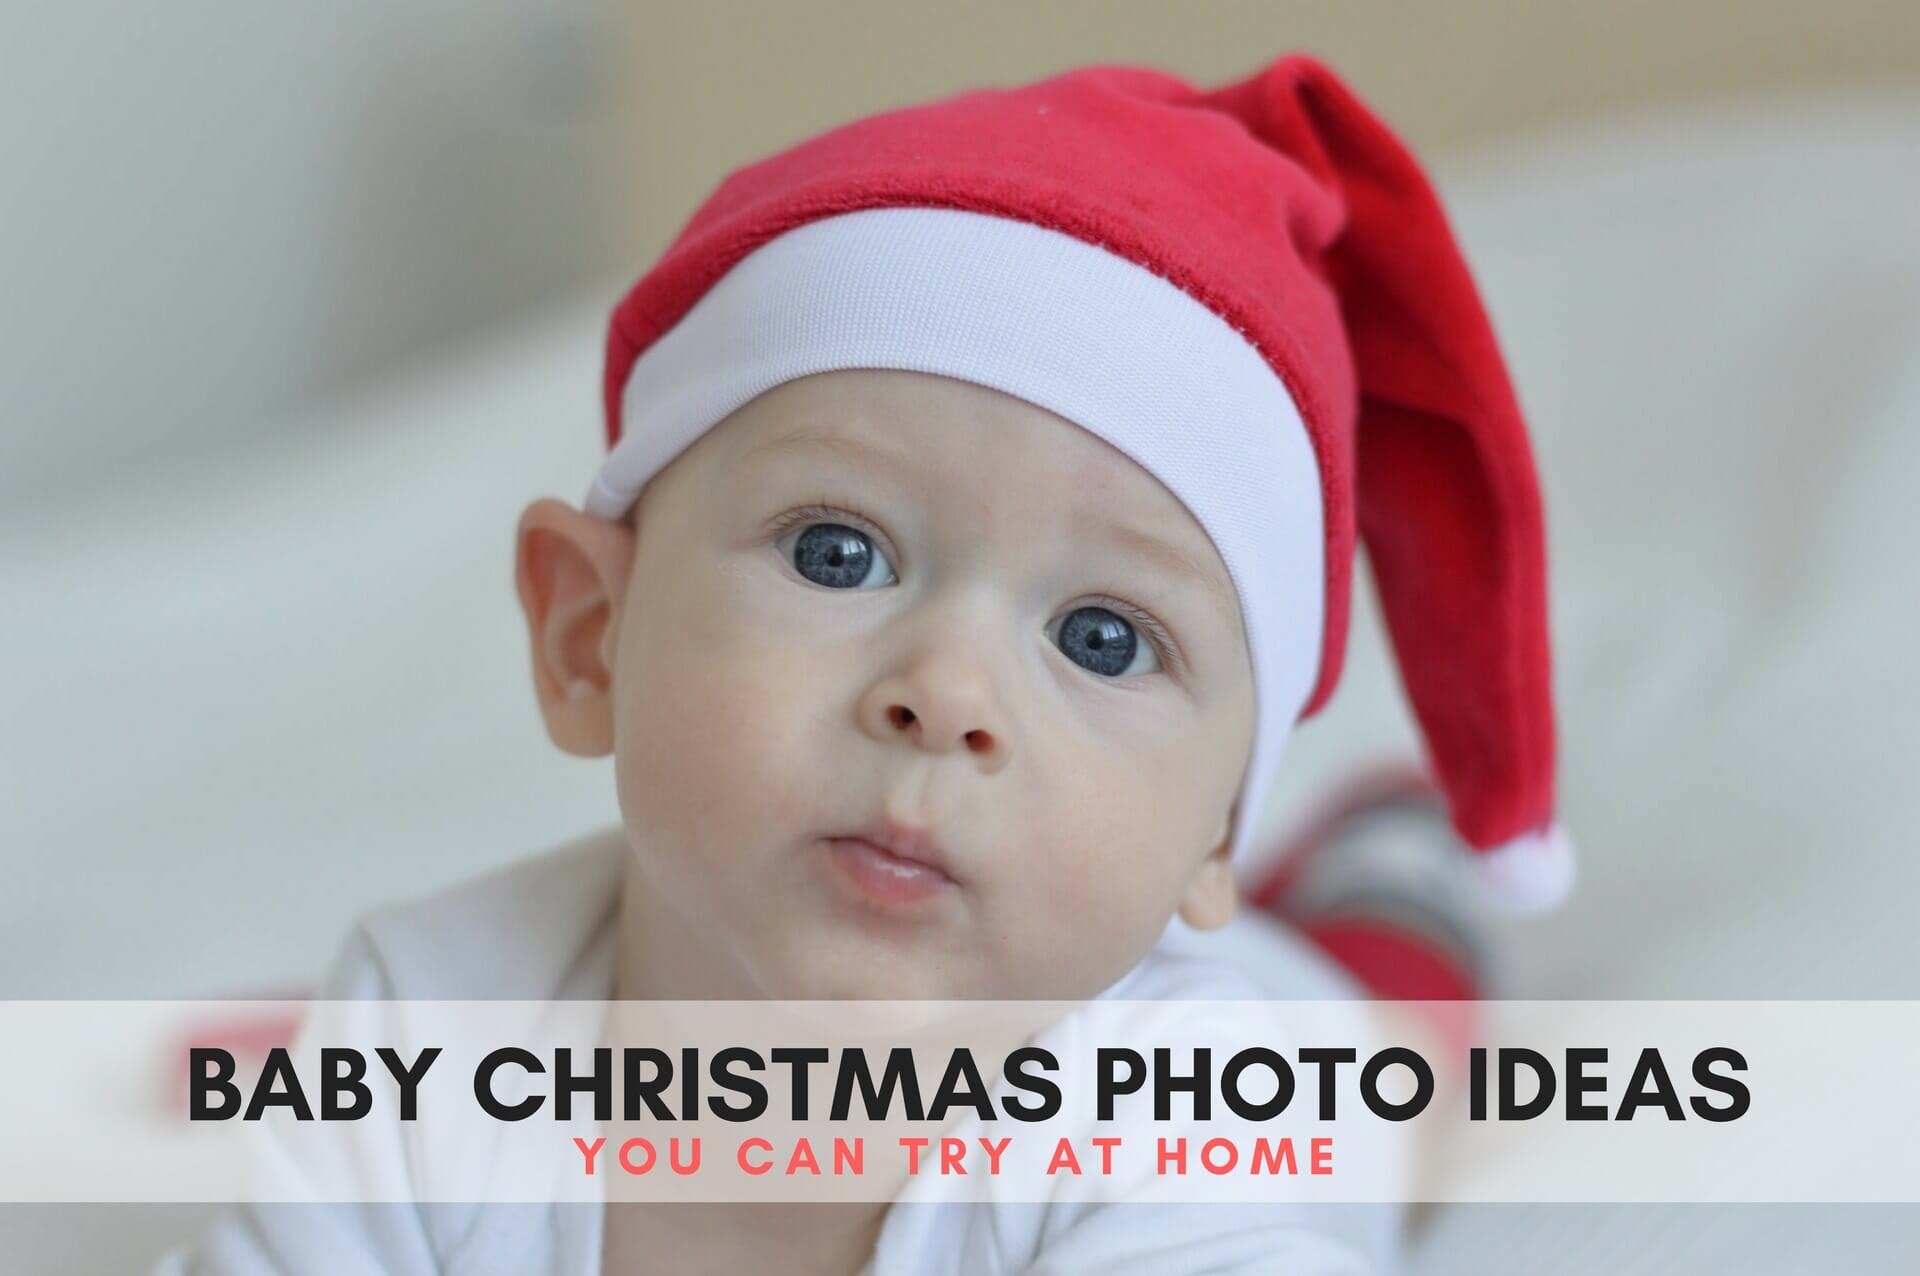 Memorable Baby Christmas Photo Ideas You Can Try at Home